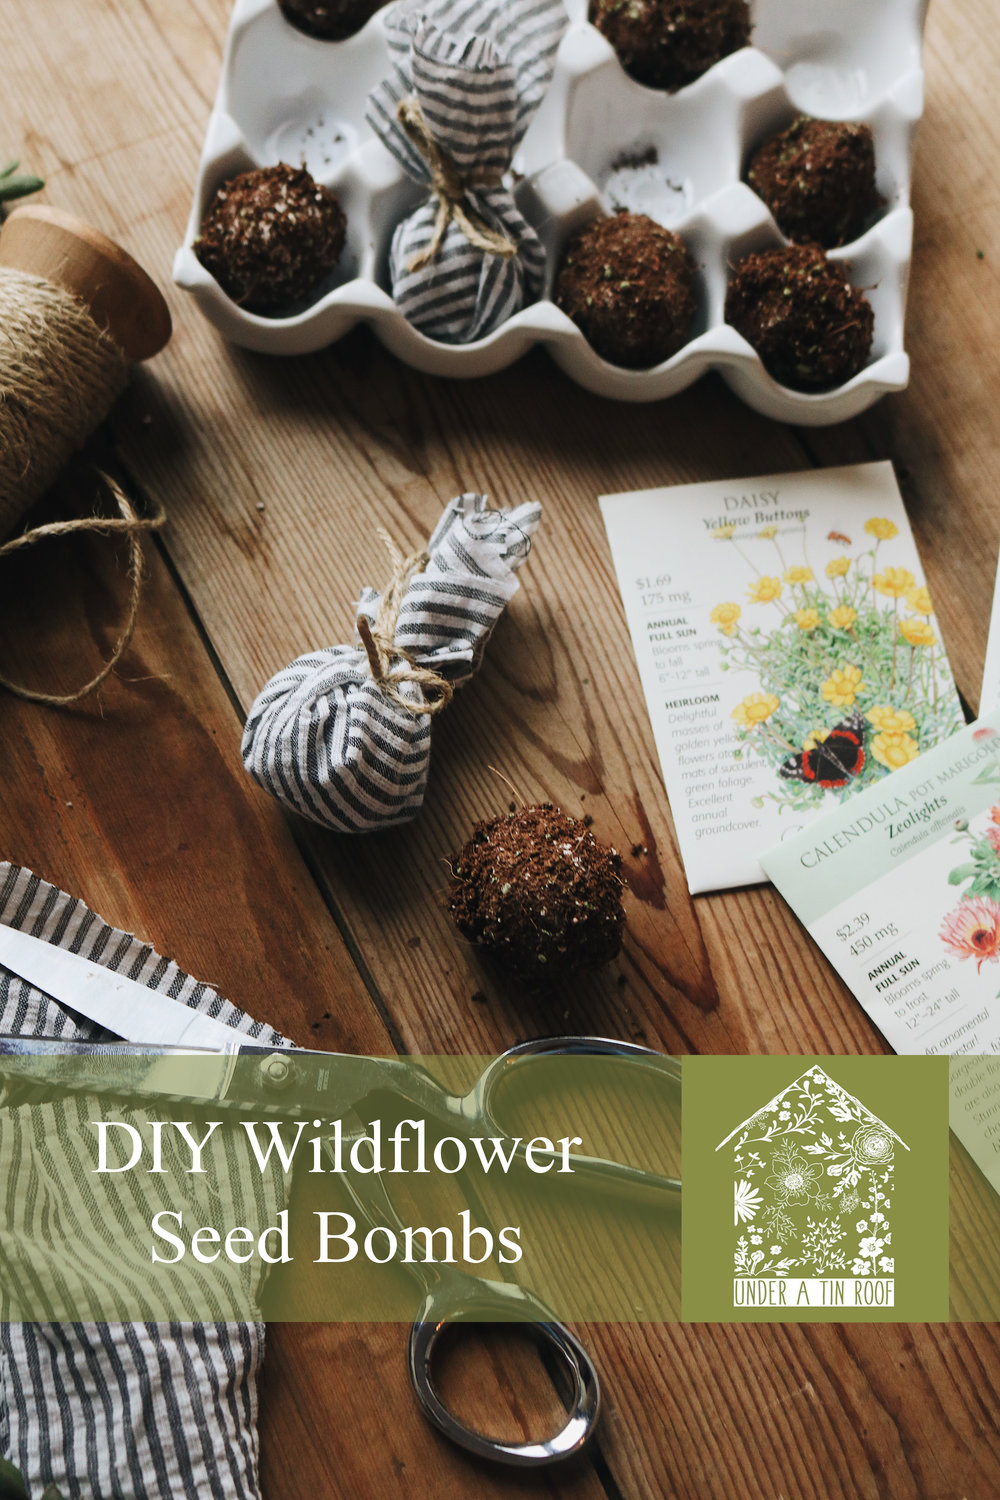 DIY Wildflower Seed Bombs - Under A Tin Roof Blog